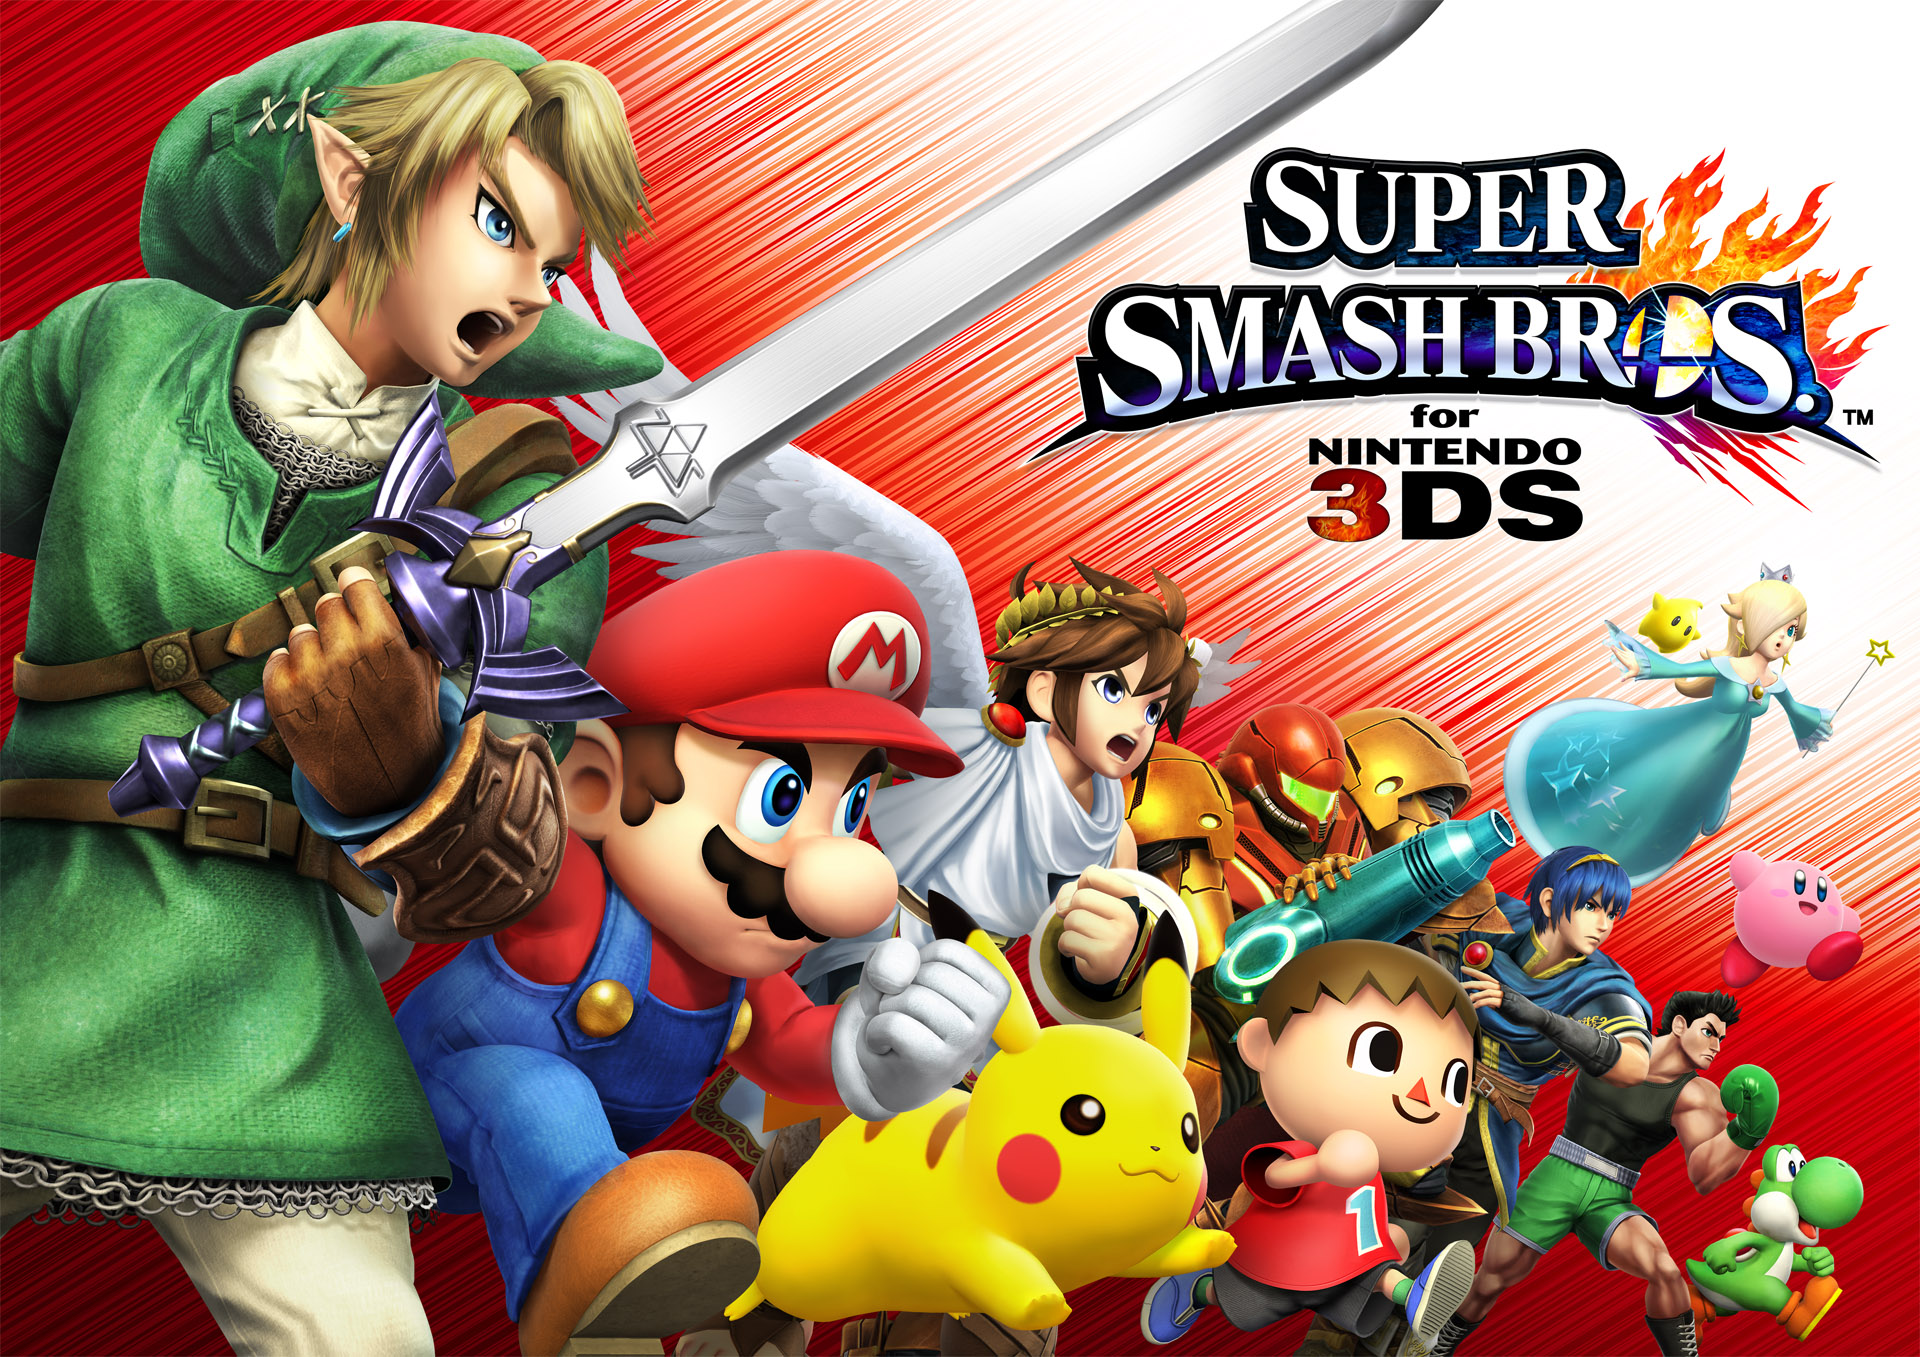 3DS Reviews Super-smash-bros-3ds-secret-characters-revealed1